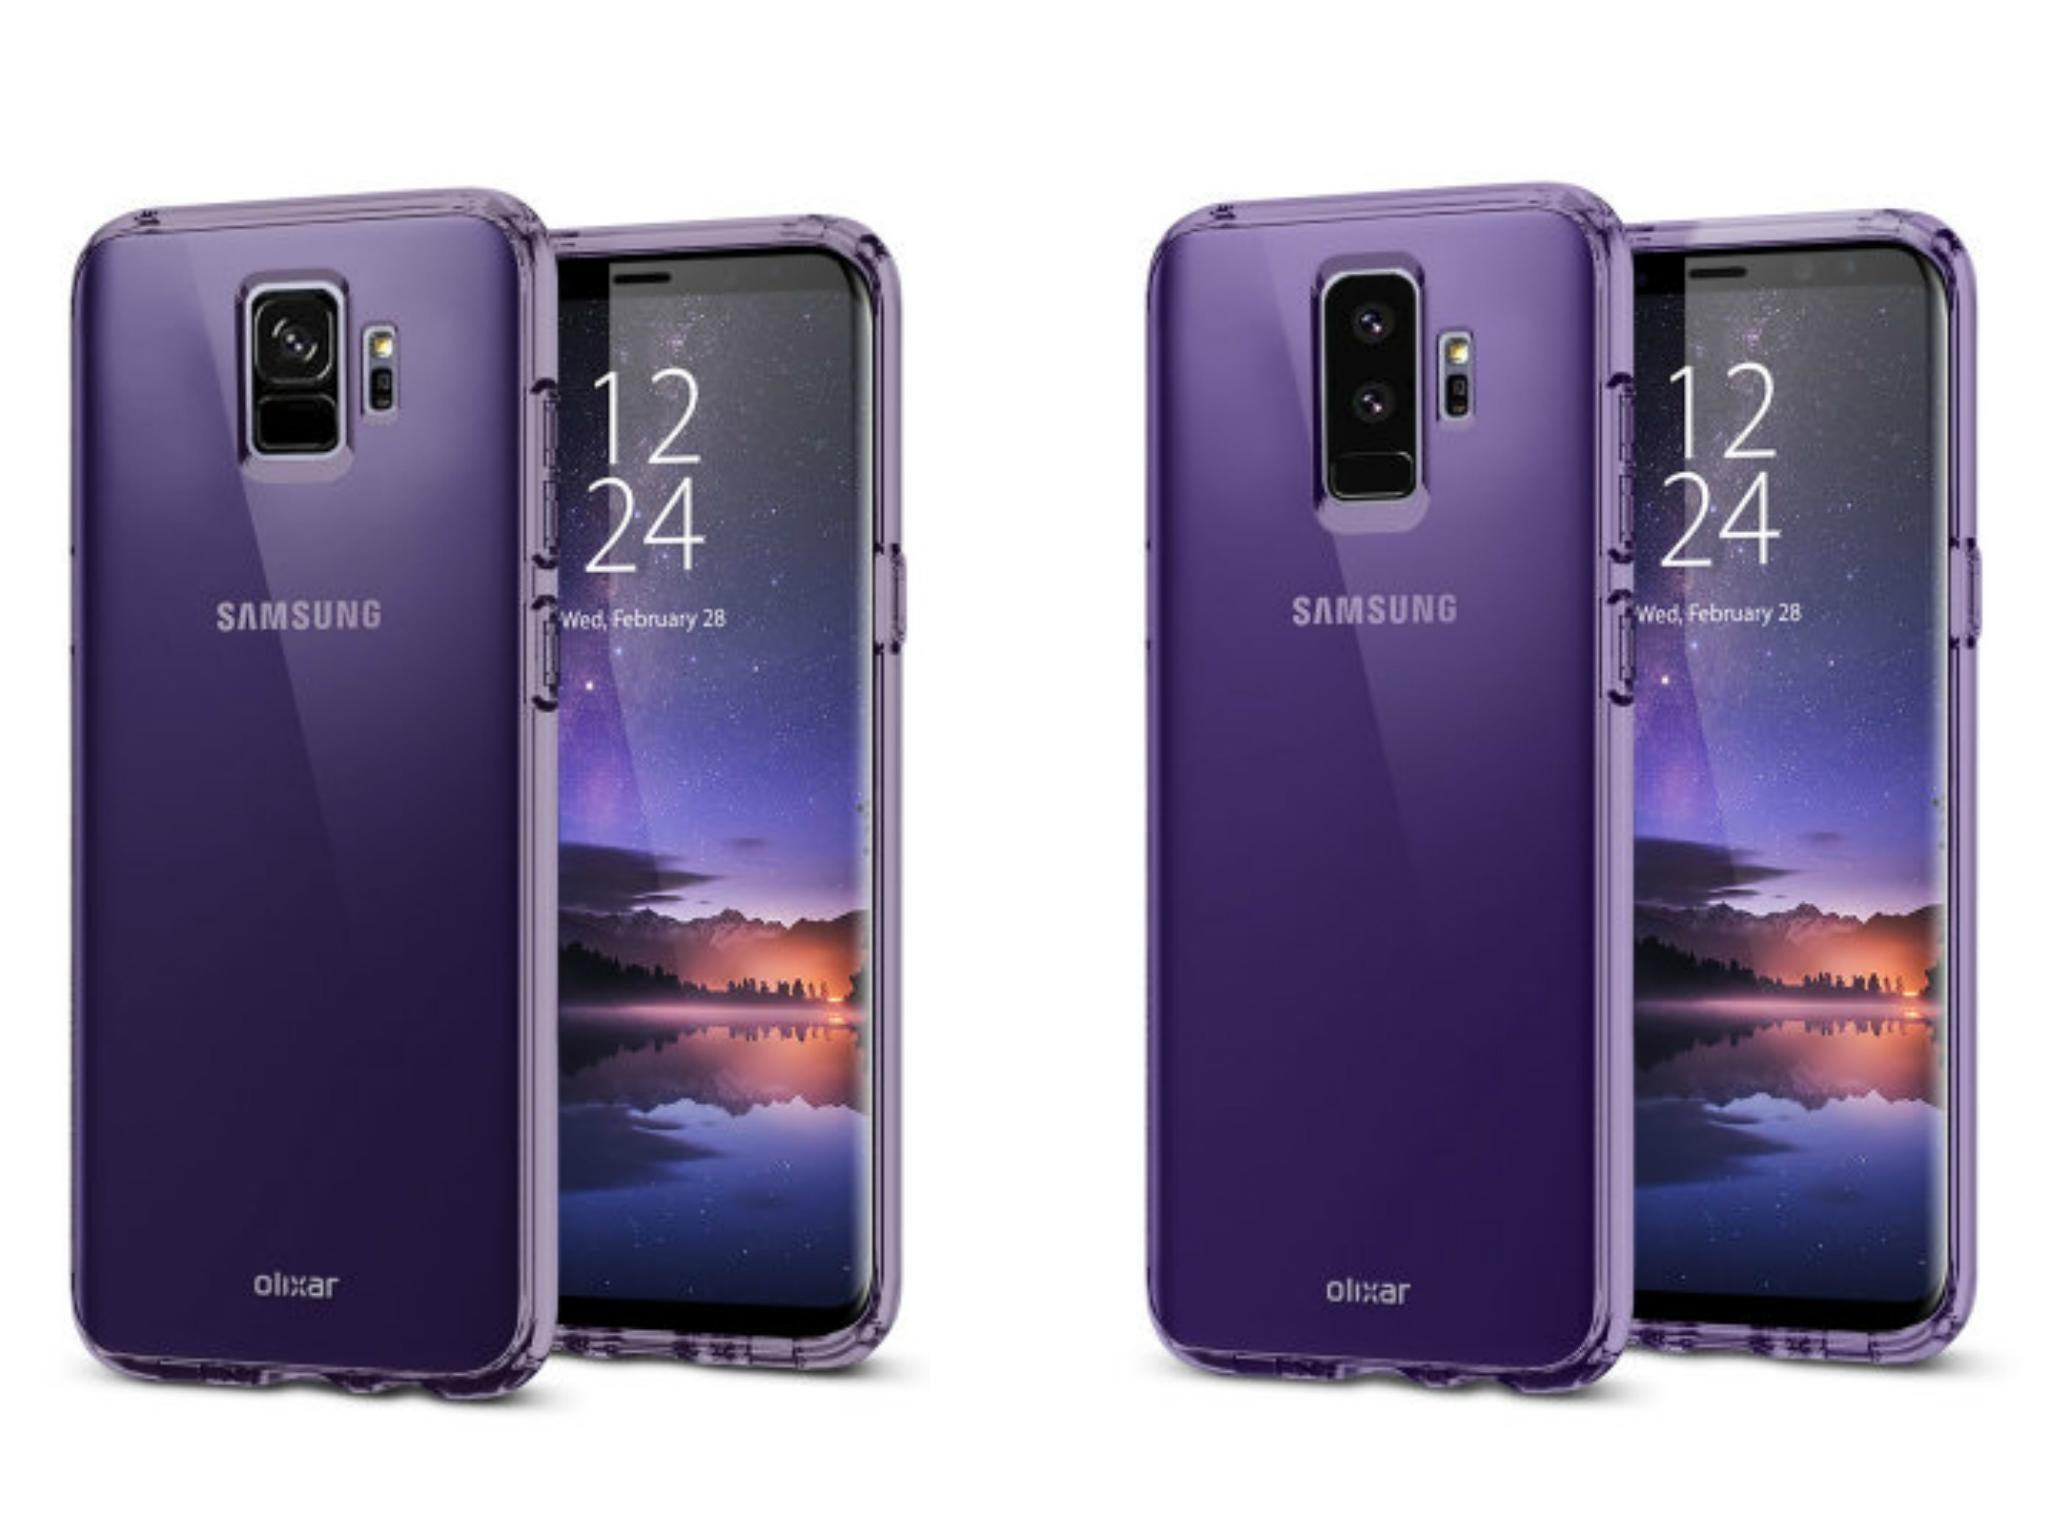 samsung galaxy s9 release date new leak claims phone will go on sale in february the independent. Black Bedroom Furniture Sets. Home Design Ideas